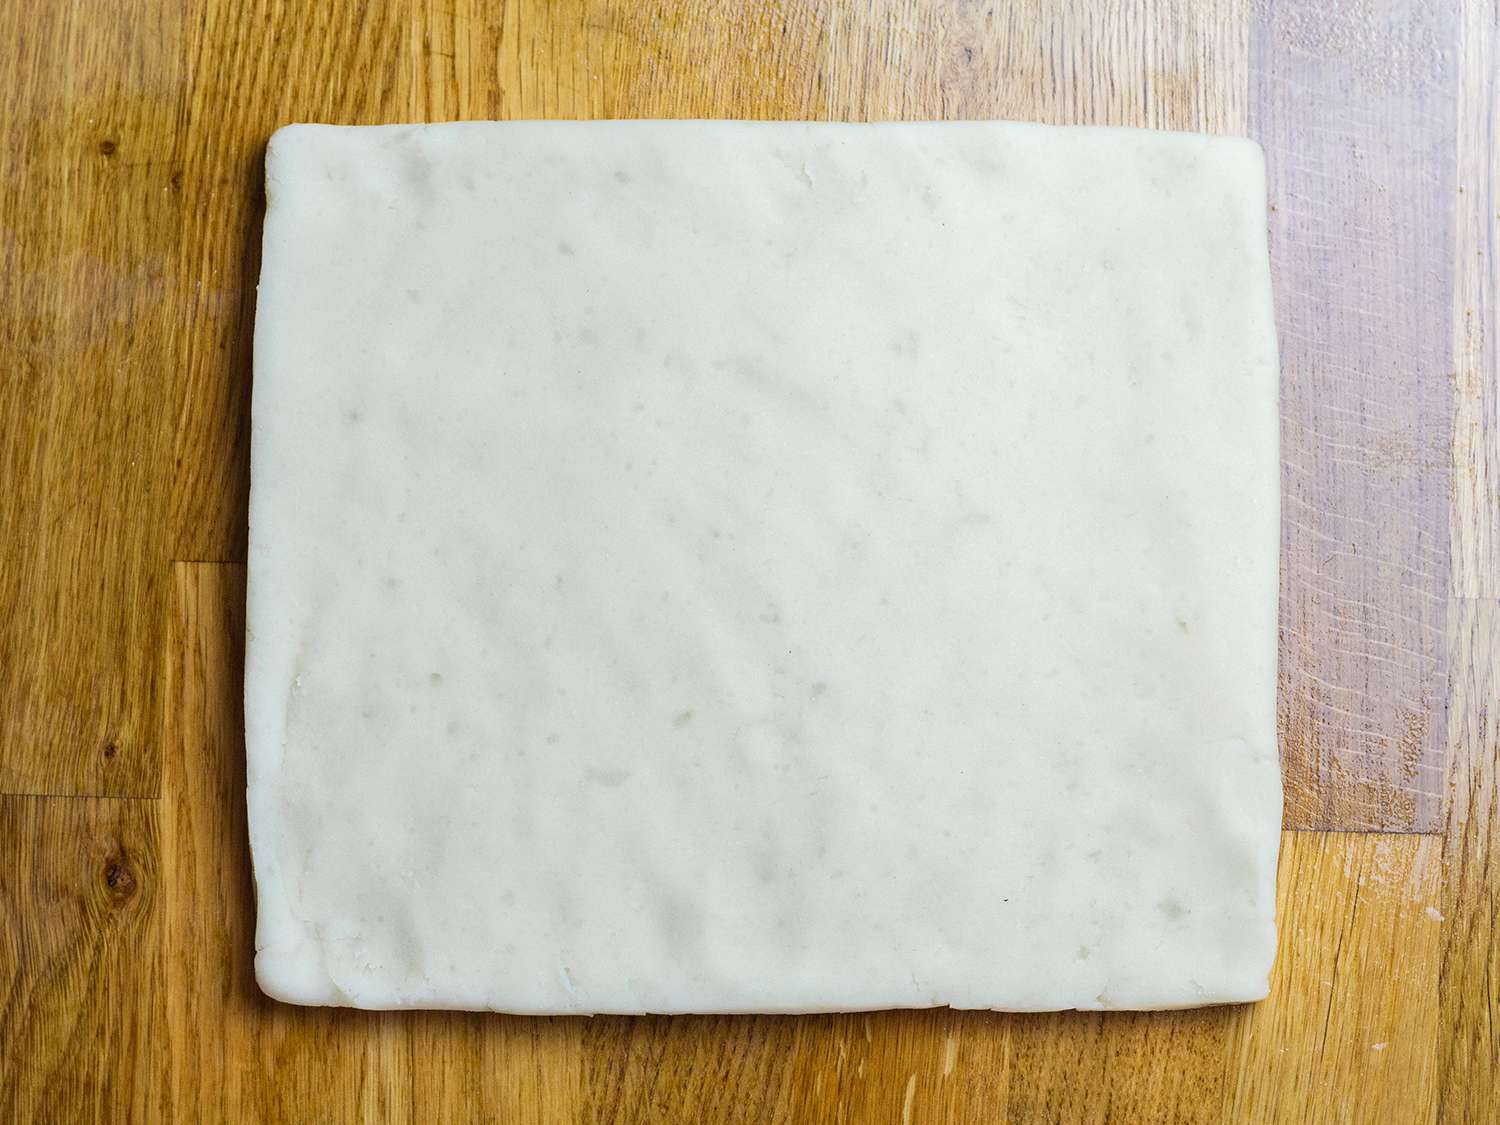 Squared off shaped dough on a work surface